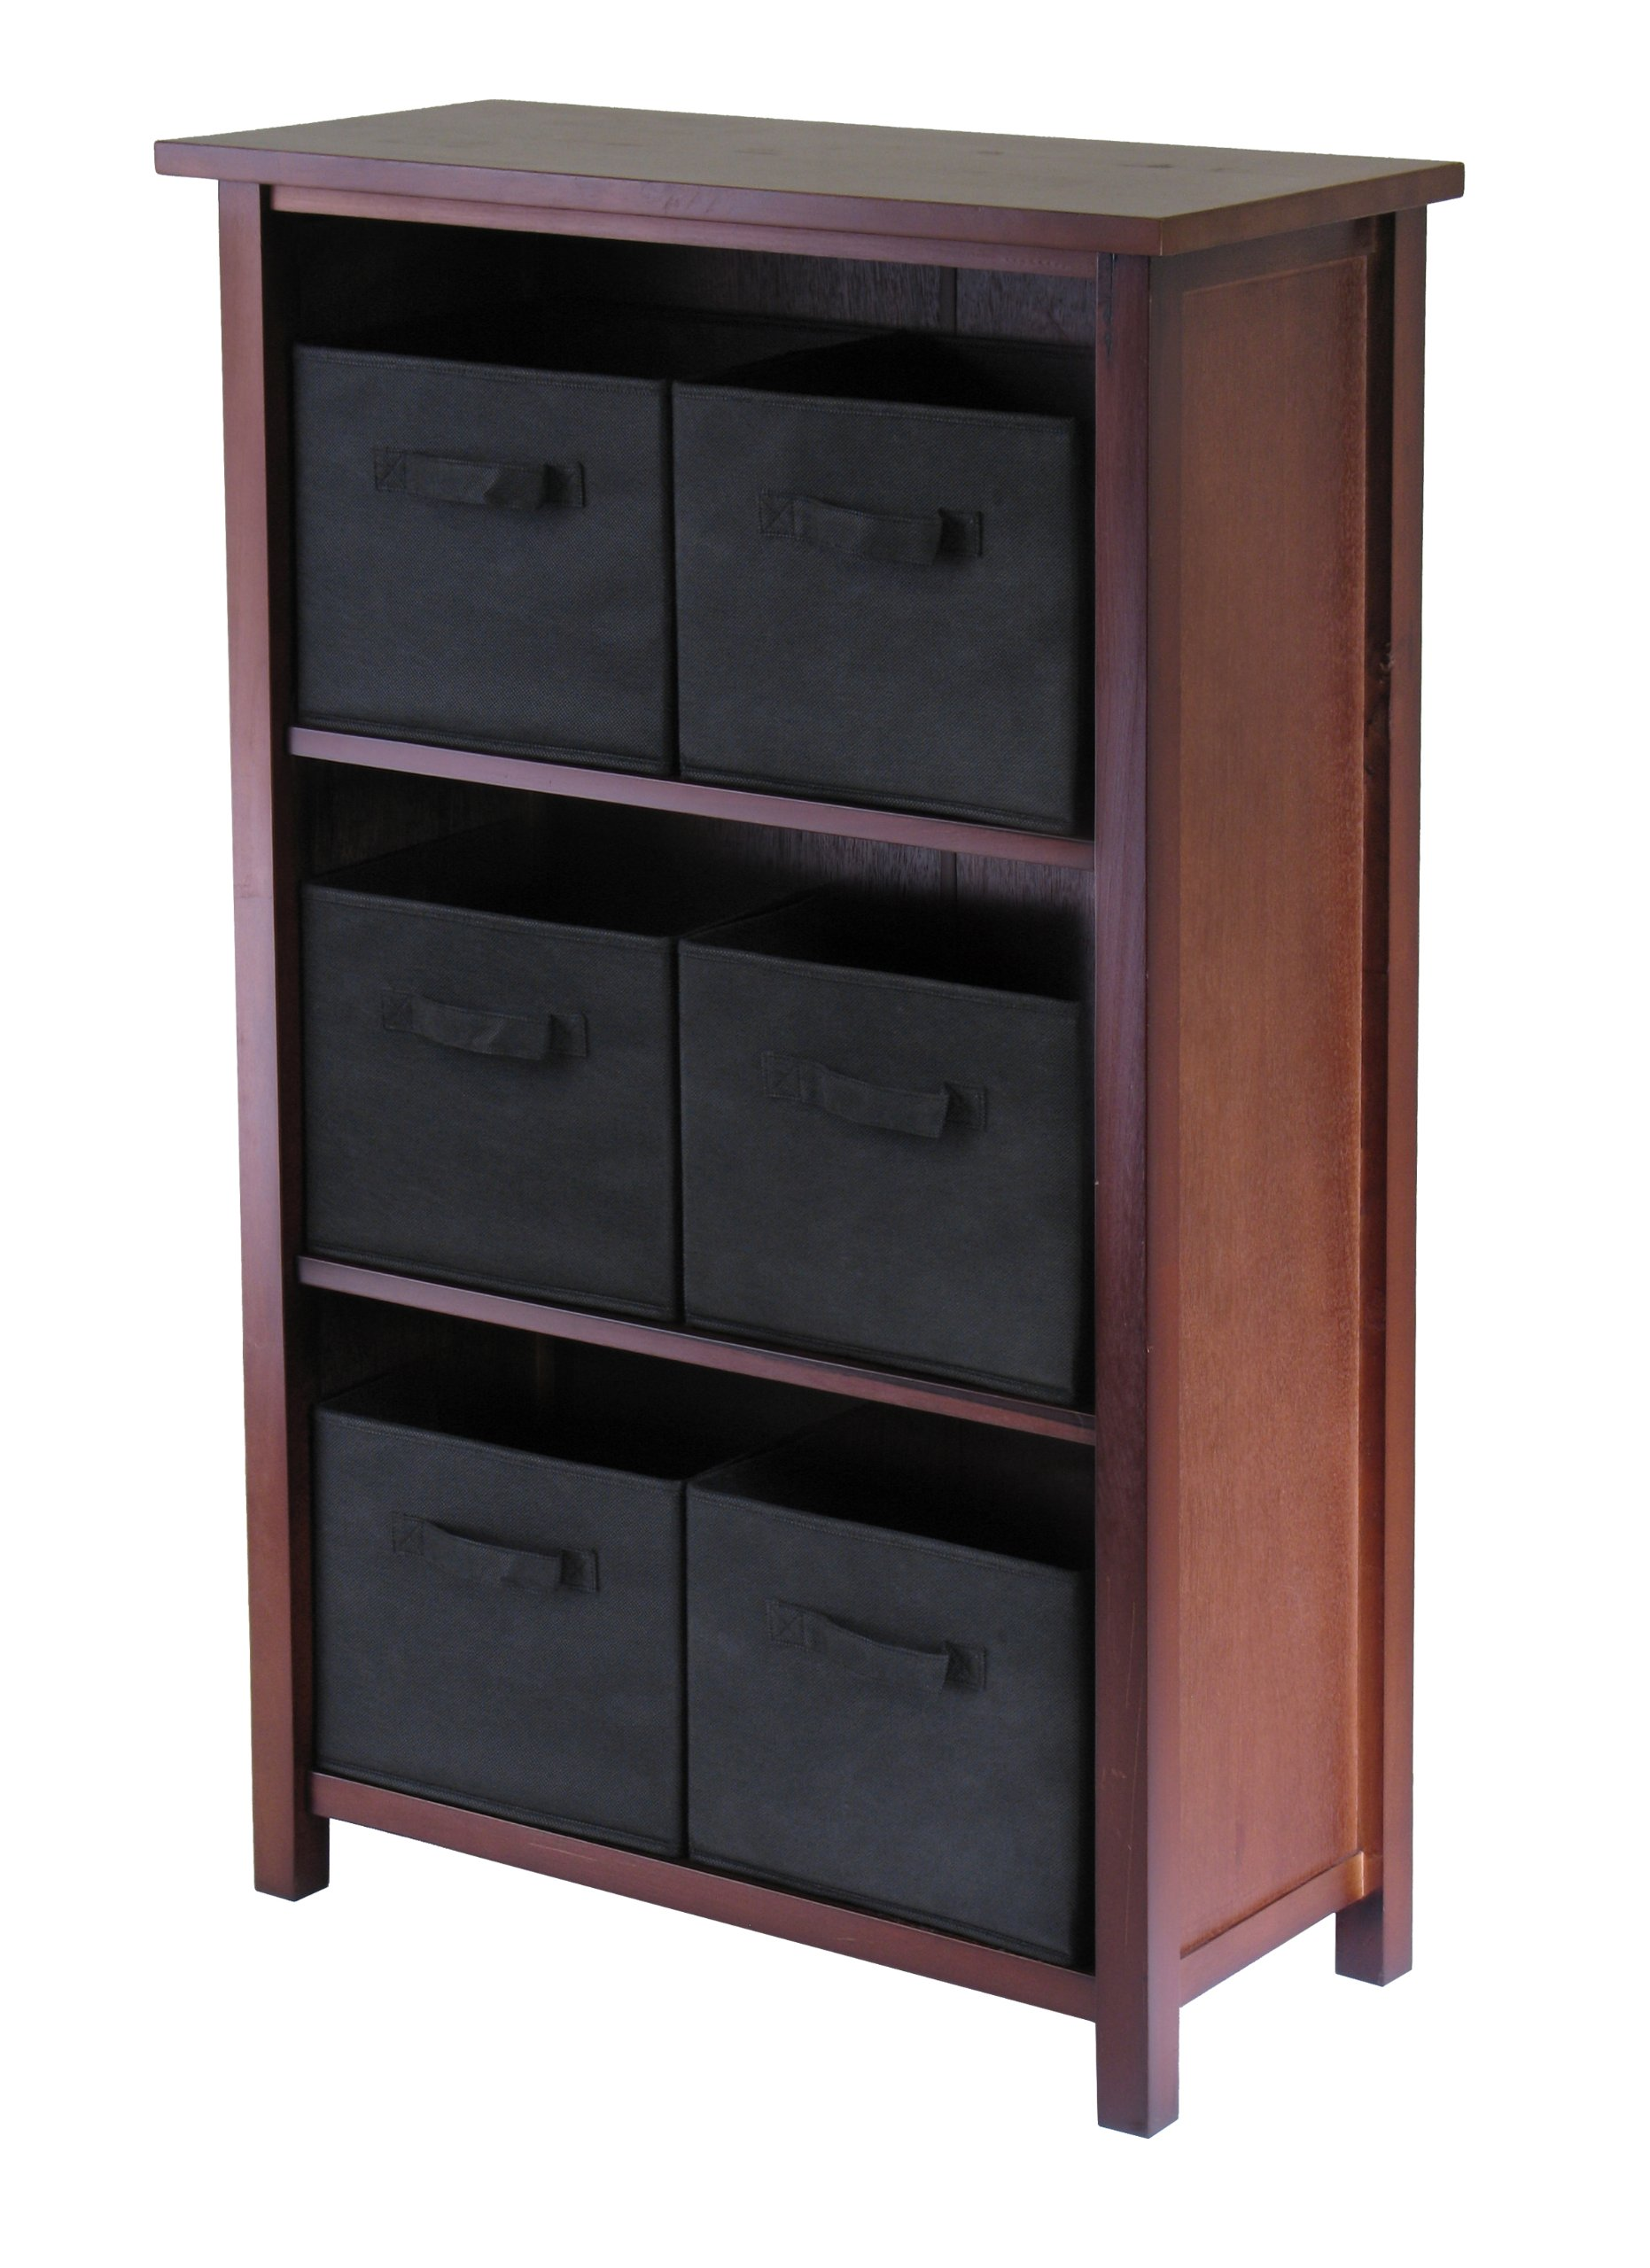 Winsome Wood Verona Wood 4 Tier Open Cabinet with 6 Black Folding Fabric Baskets by Winsome Wood